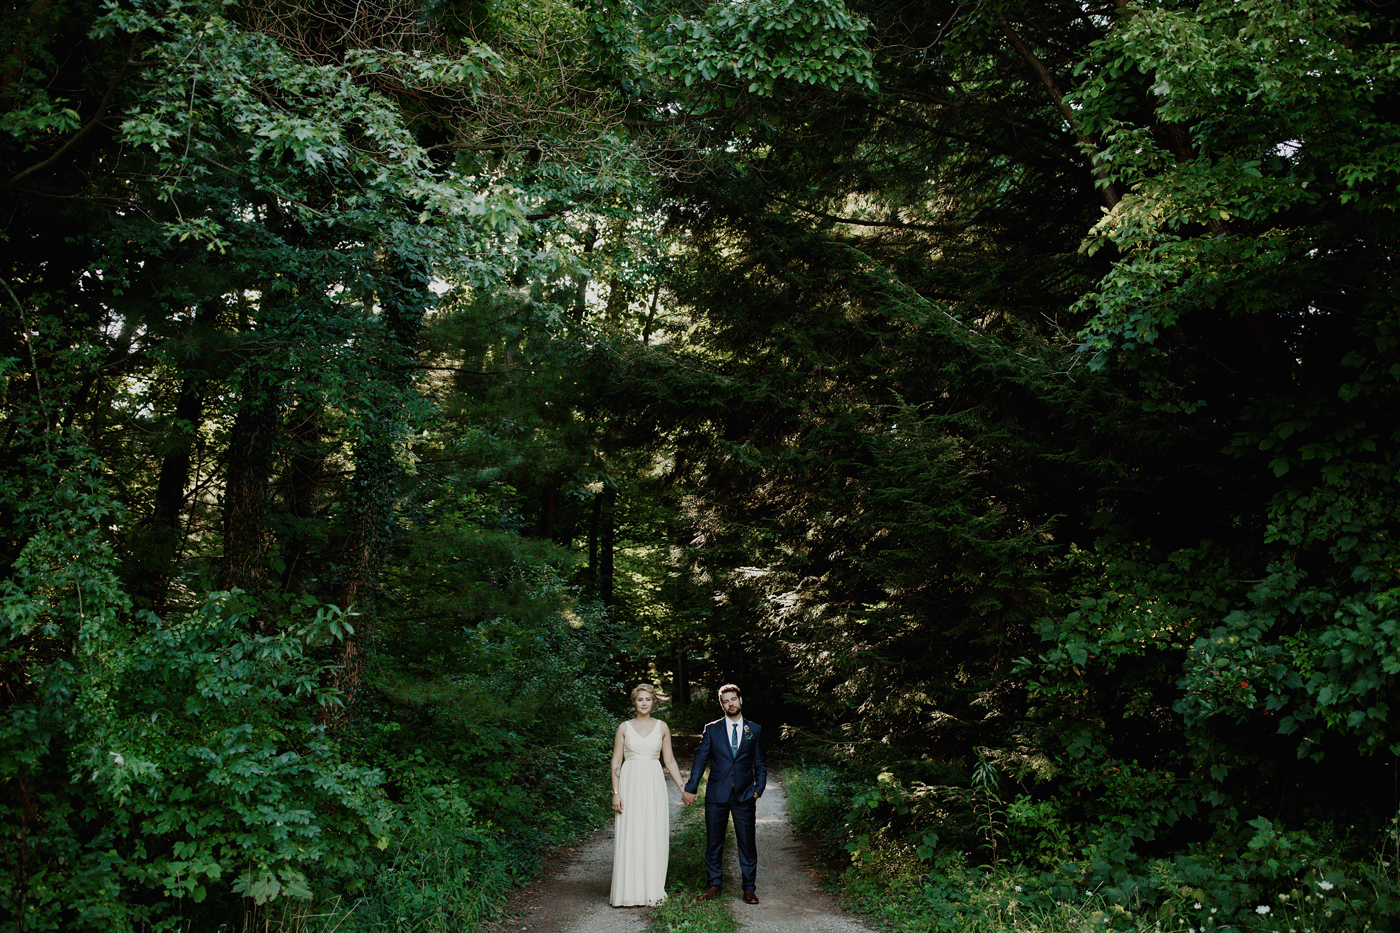 amandavanvels_backyardwedding_0321.jpg